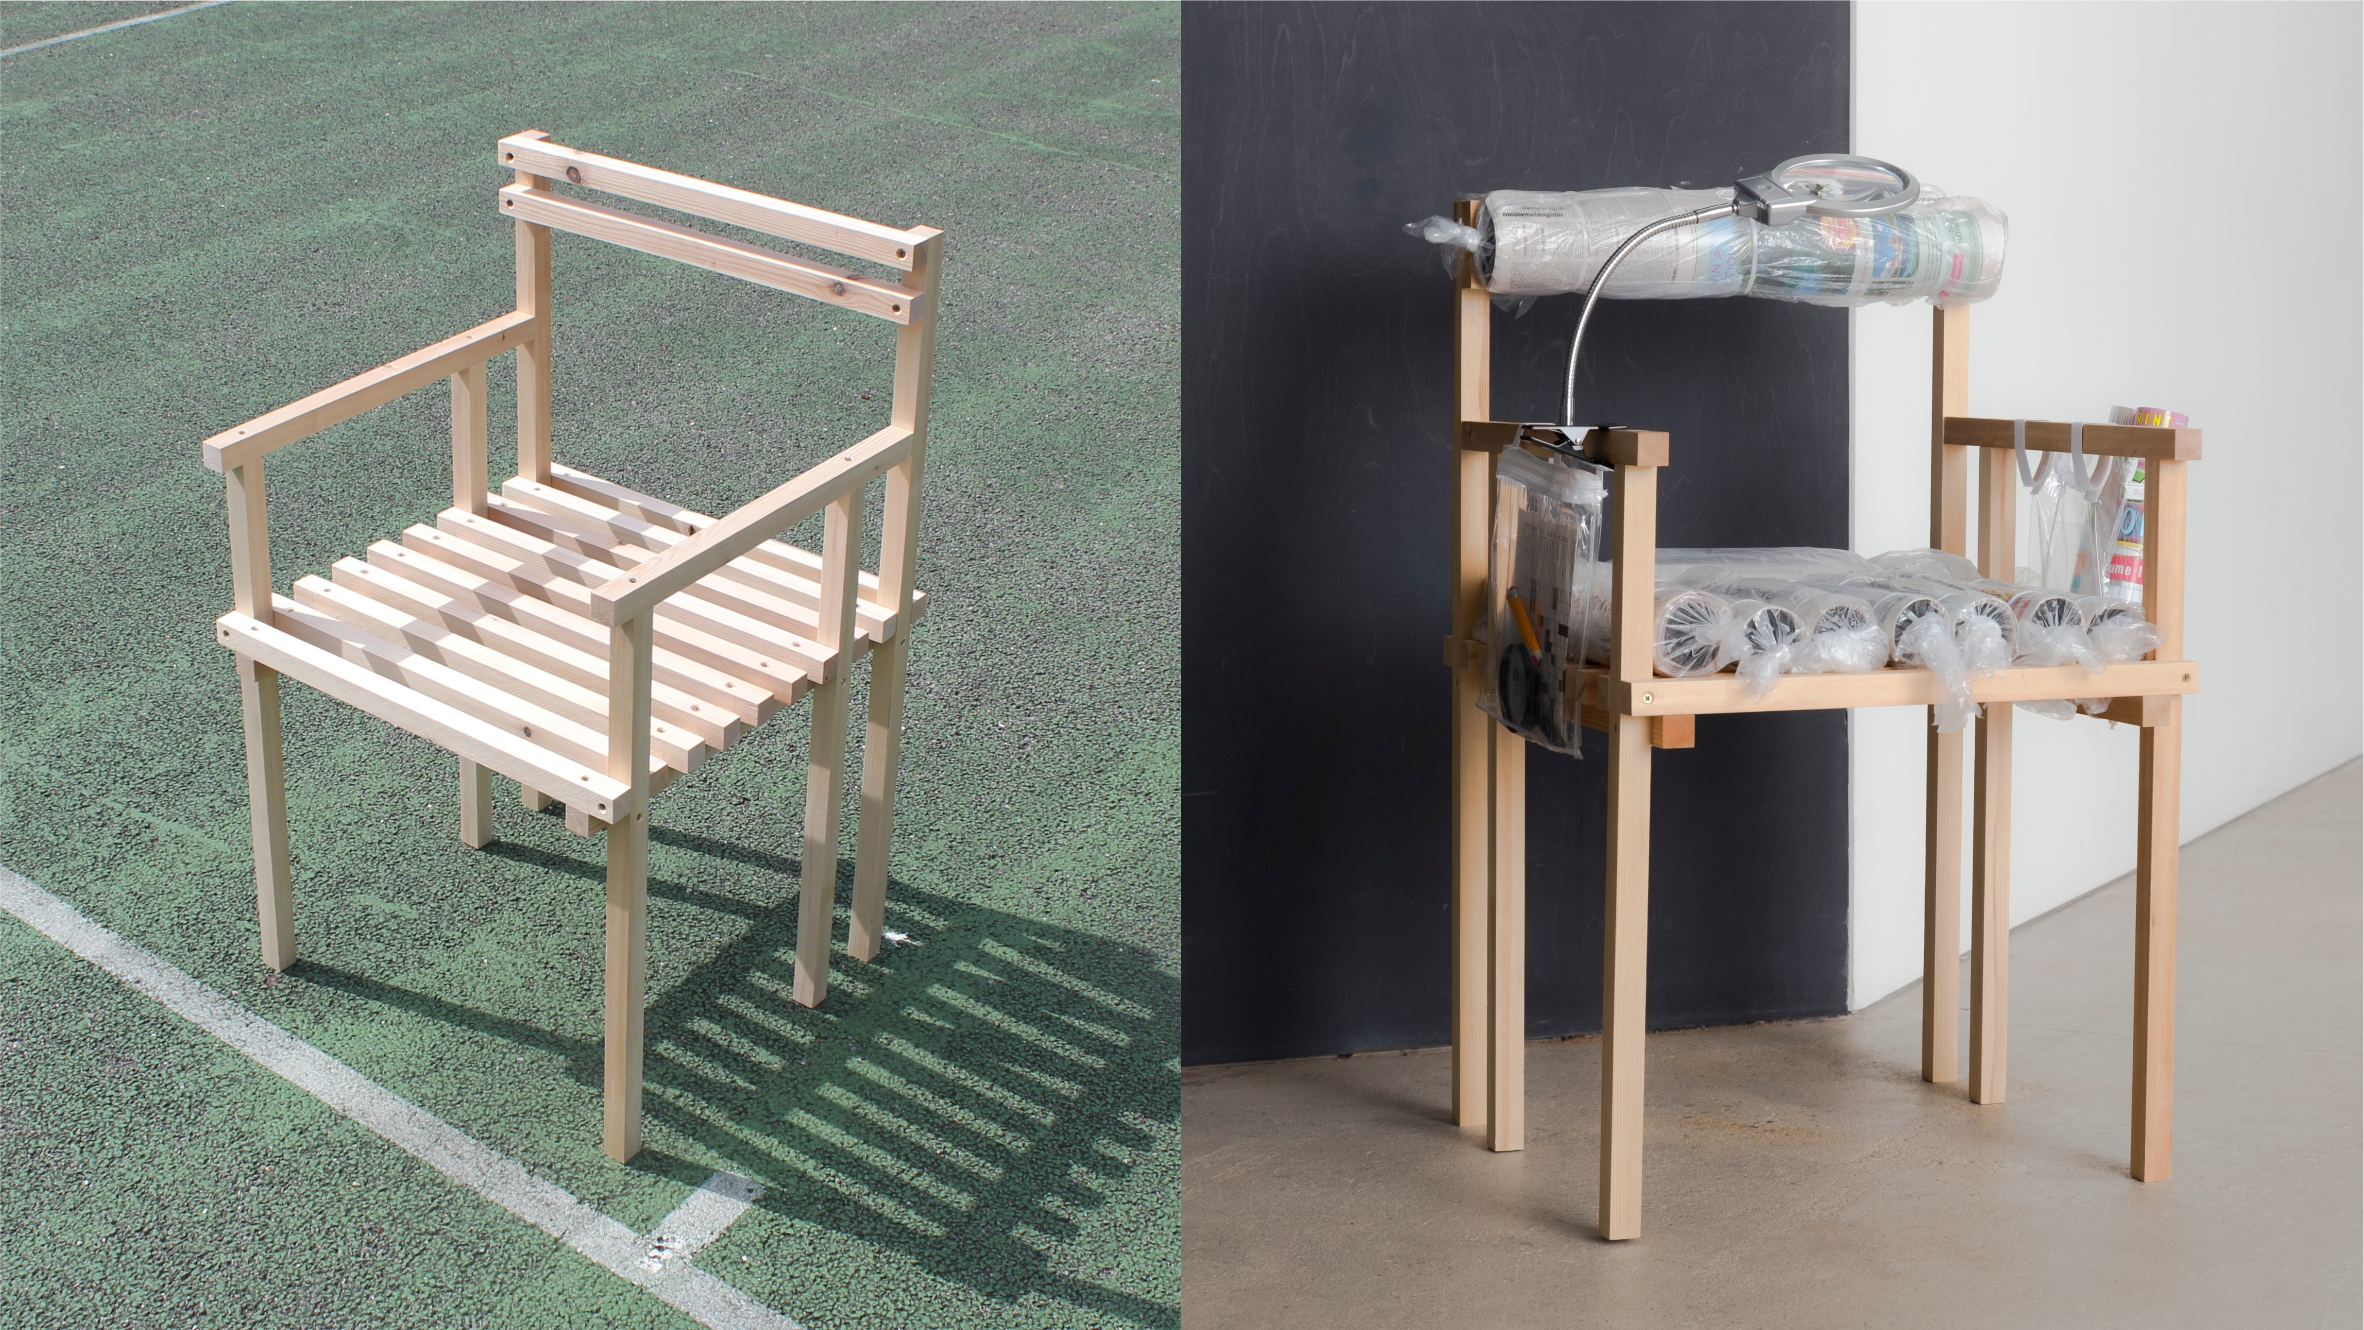 Booster seat by Nicole Mclaughlin from 19 Chairs project